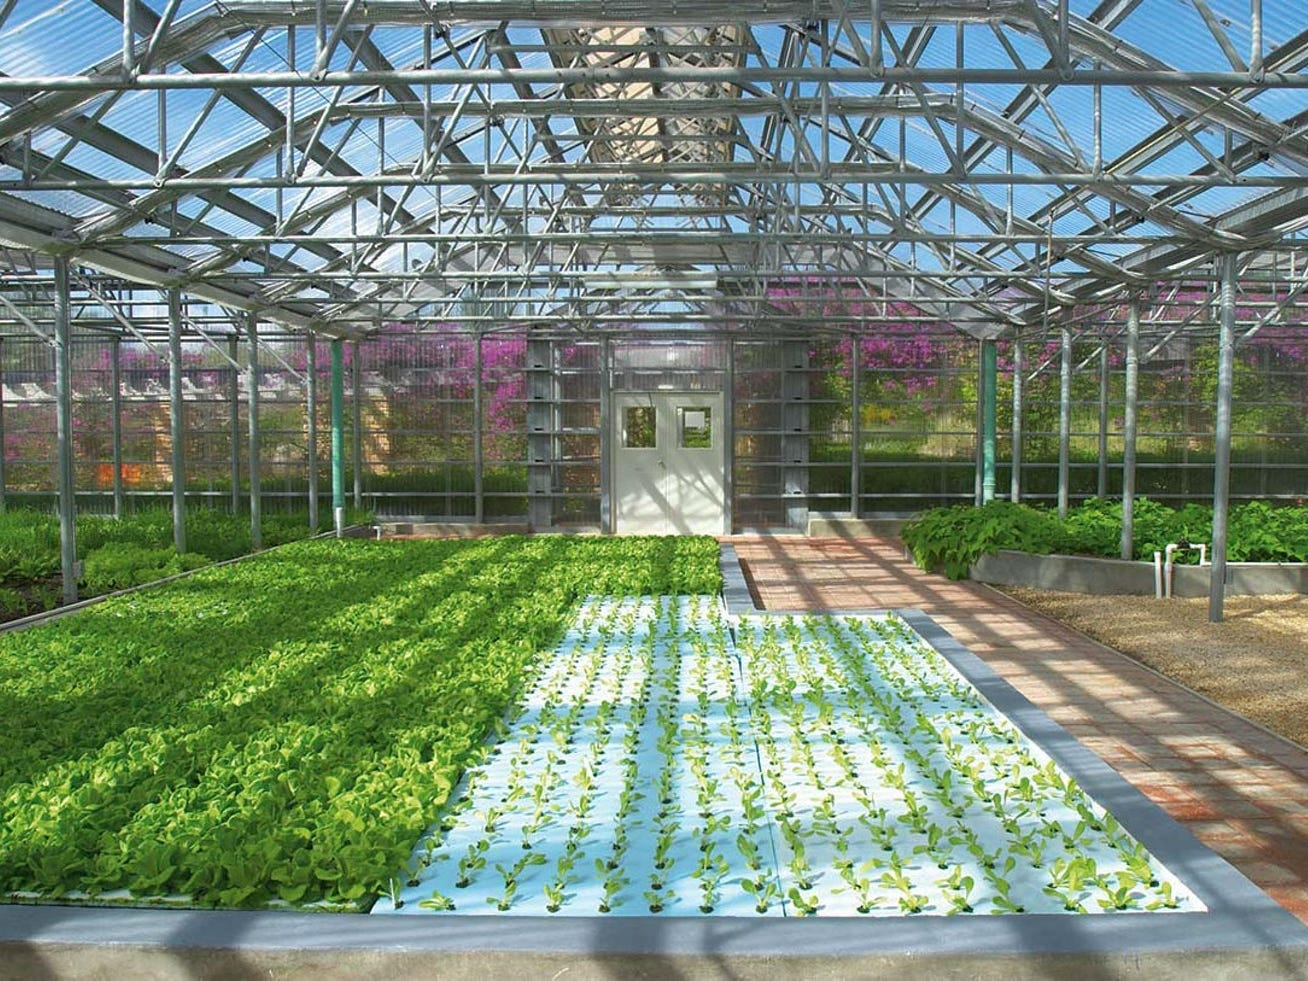 The hydroponic farm at CuisinArt Golf Resort & Spa.